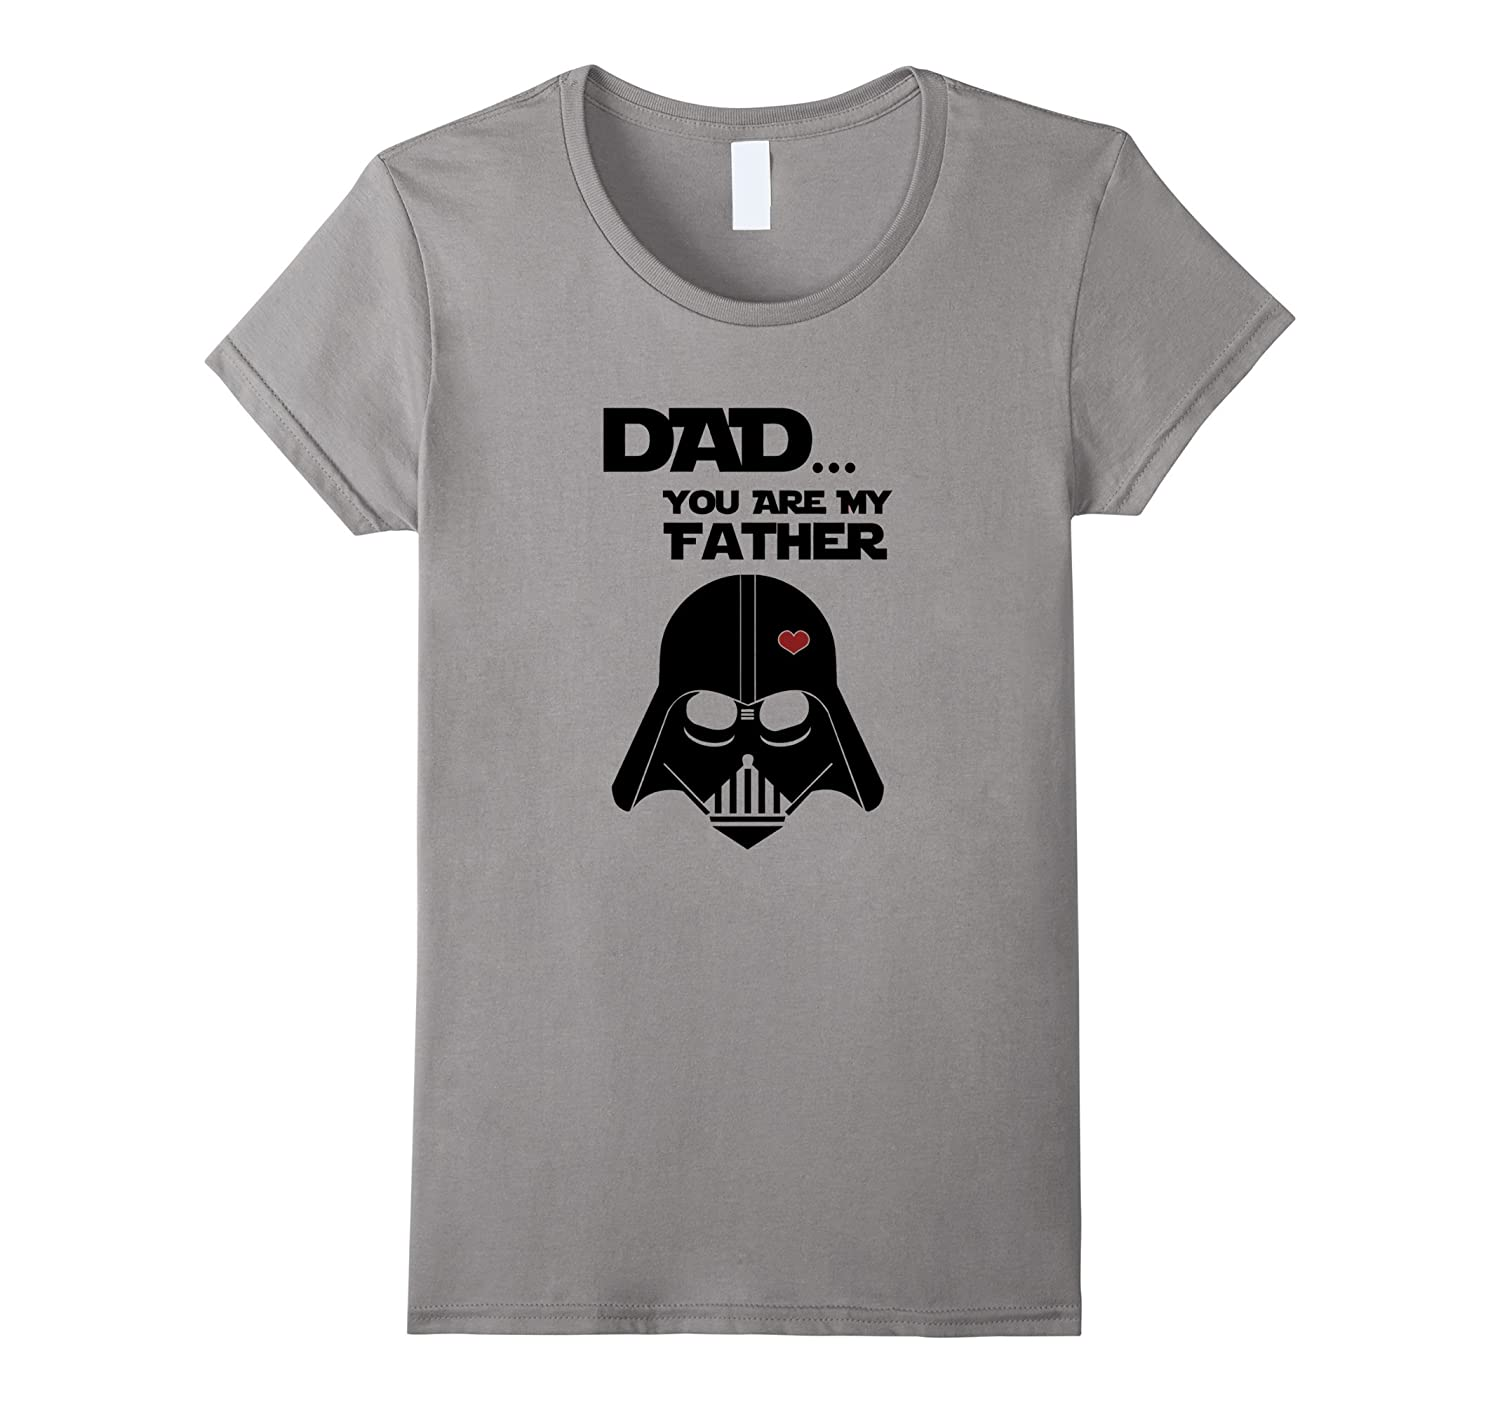 Dad you are my father t-shirt